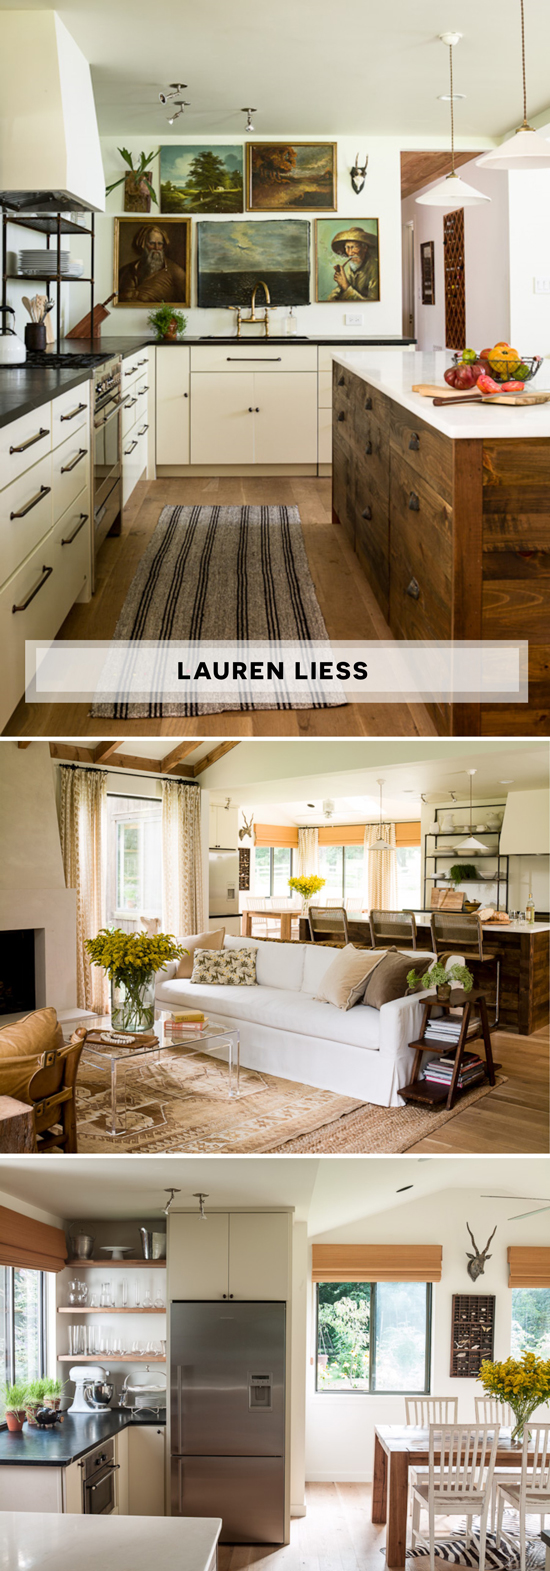 Lauren Liess of Pure Style Homes Kitchen Featured on The Design Confidential Black Open Shelving Landscape Paintings Reclaimed Wood